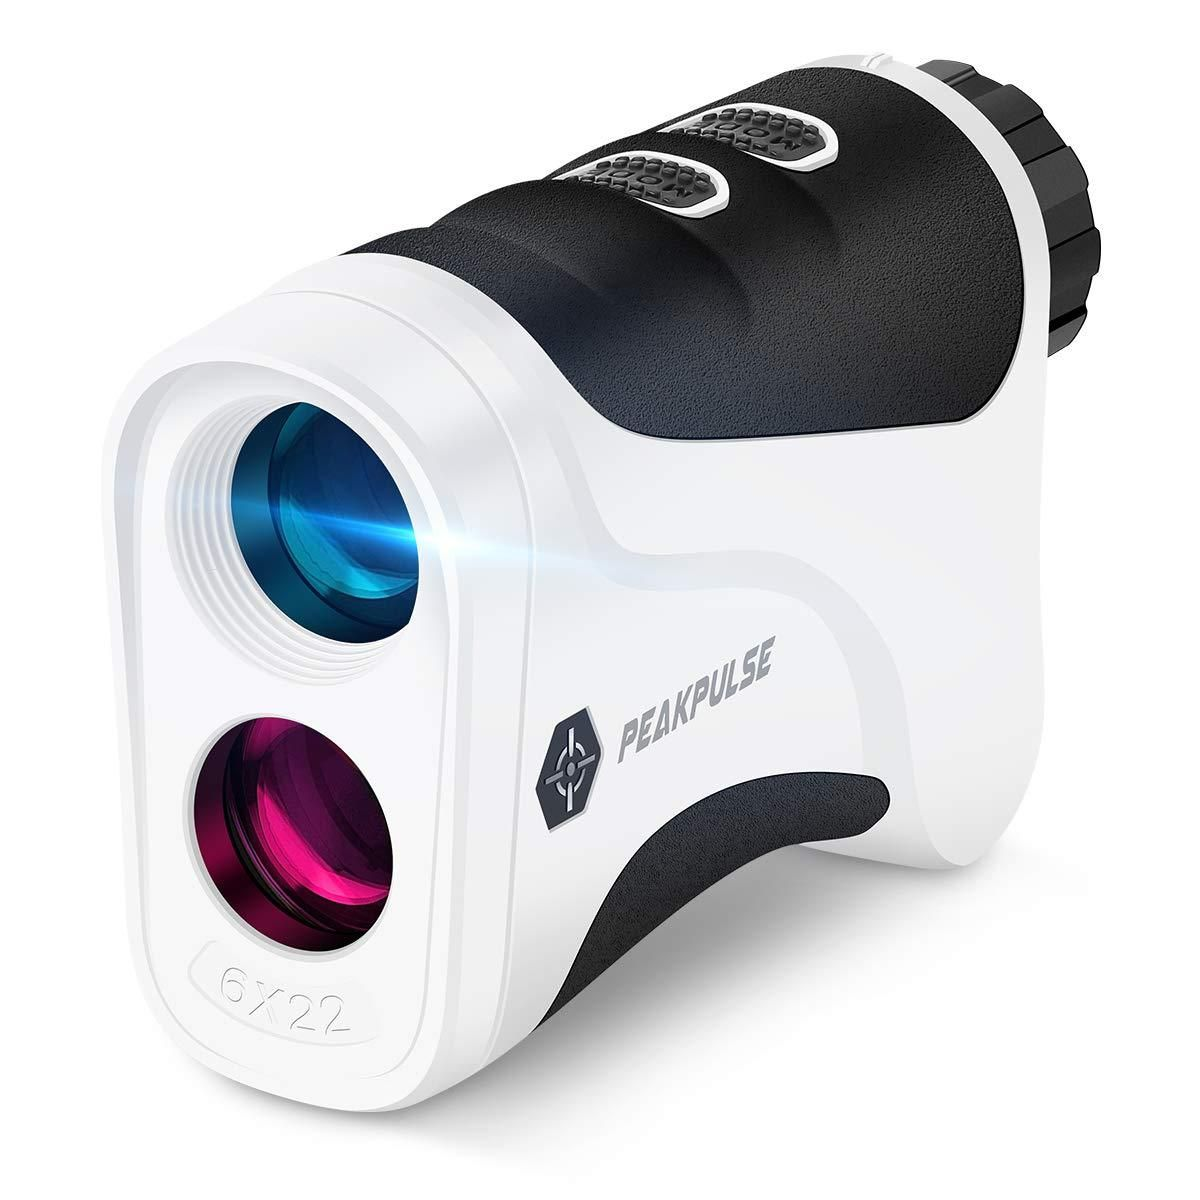 PEAKPULSE Golf Laser Rangefinder with Slope-Switch Technology, PinSeeker with JOLT Technology. - 6Pro Slope Version